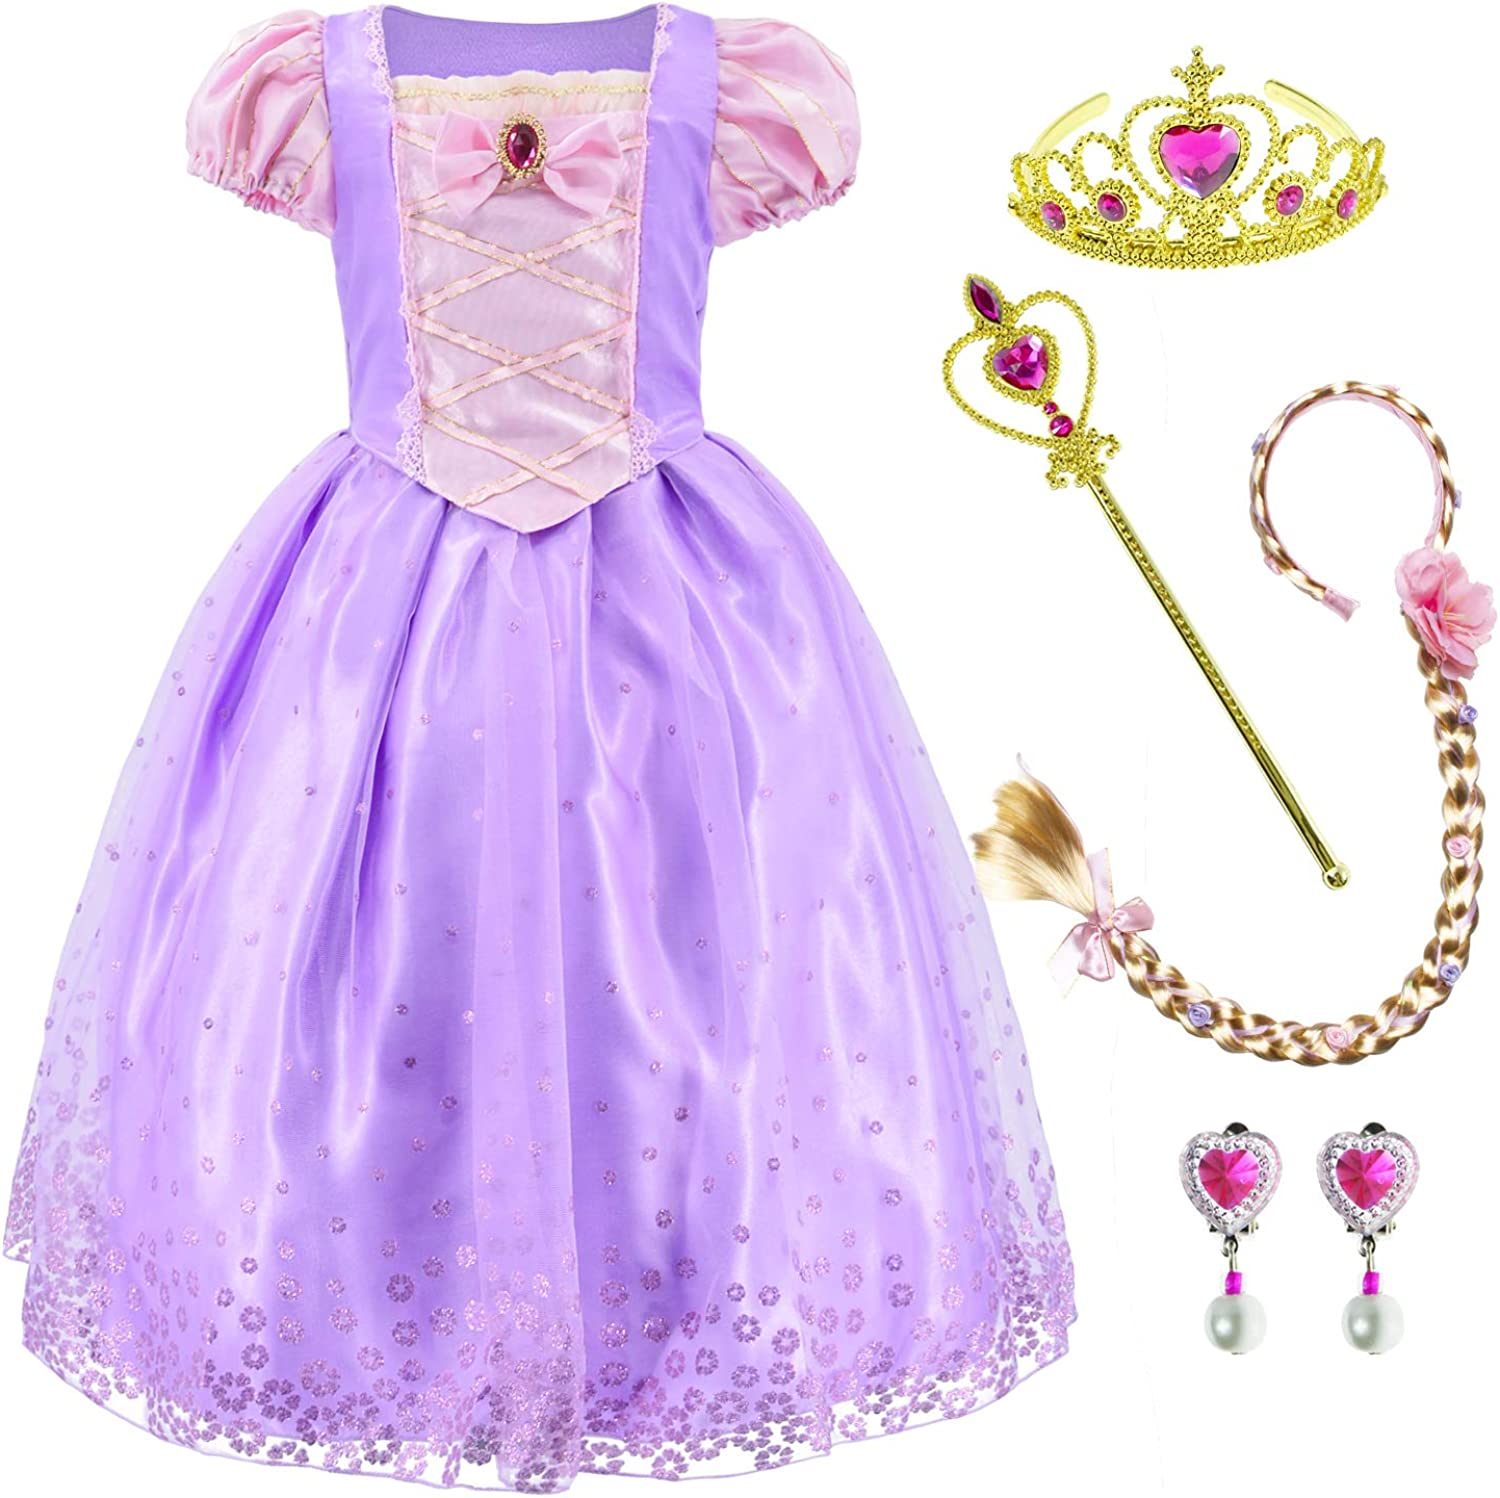 Ranking TOP8 Princess Costume Dress for Girls Earin with Braid Party Up low-pricing